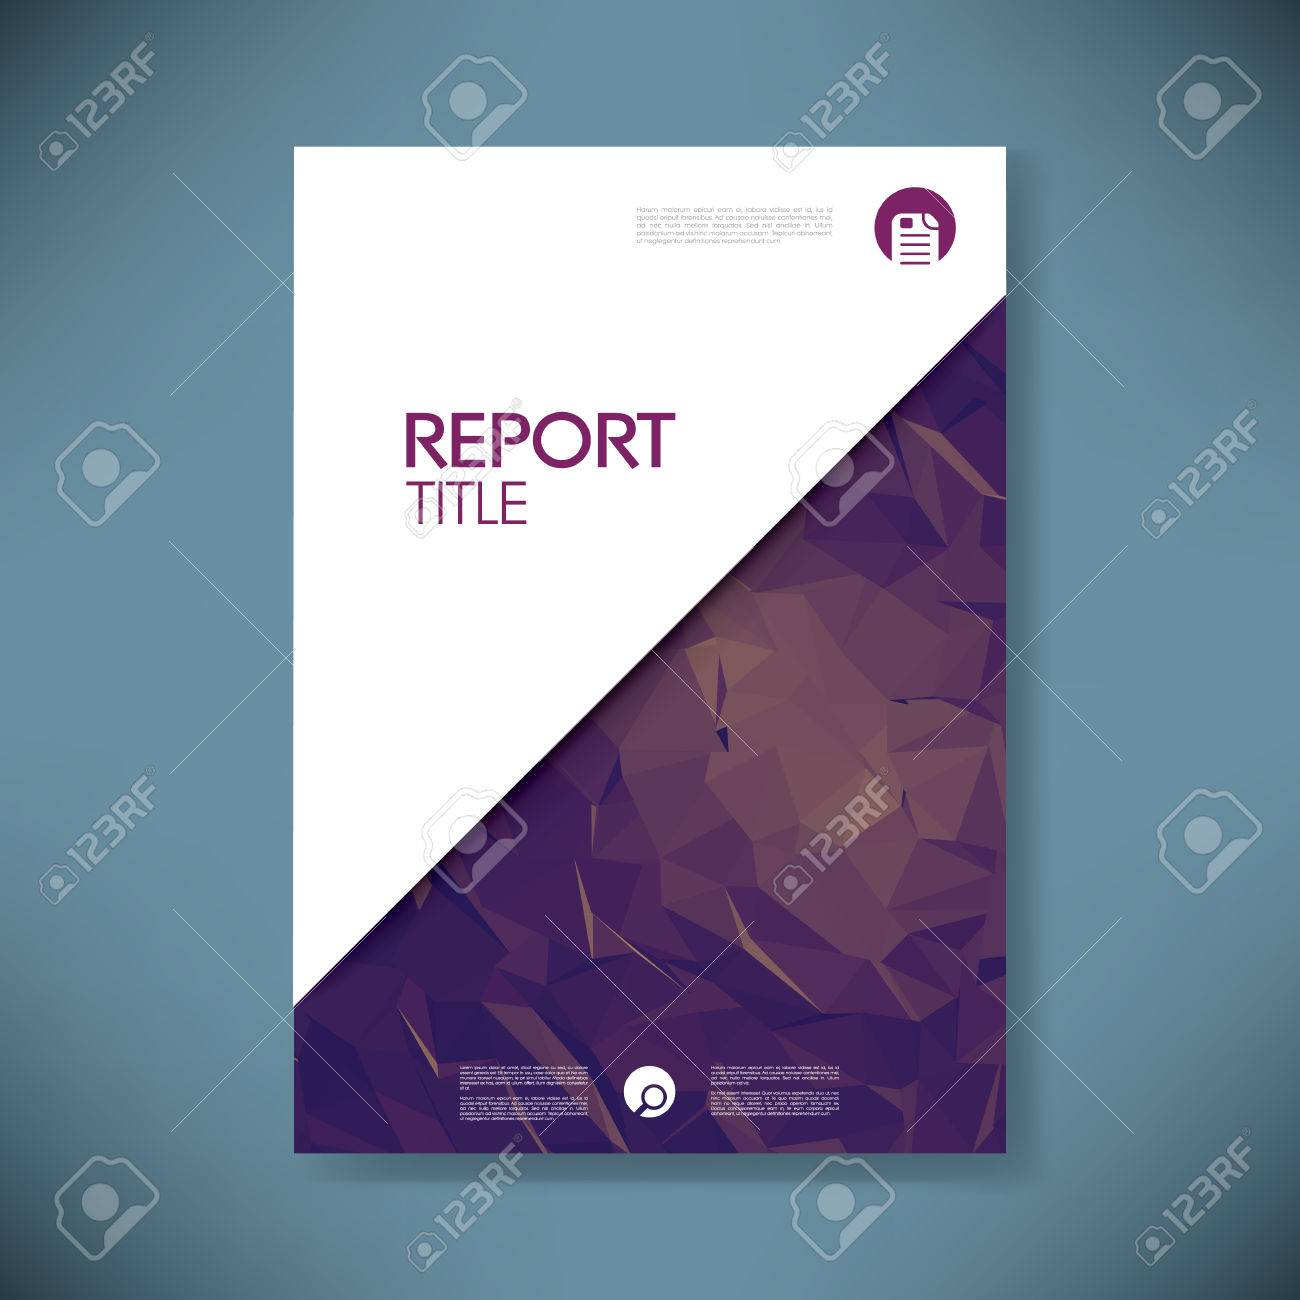 business report cover template on green low poly background, Presentation templates